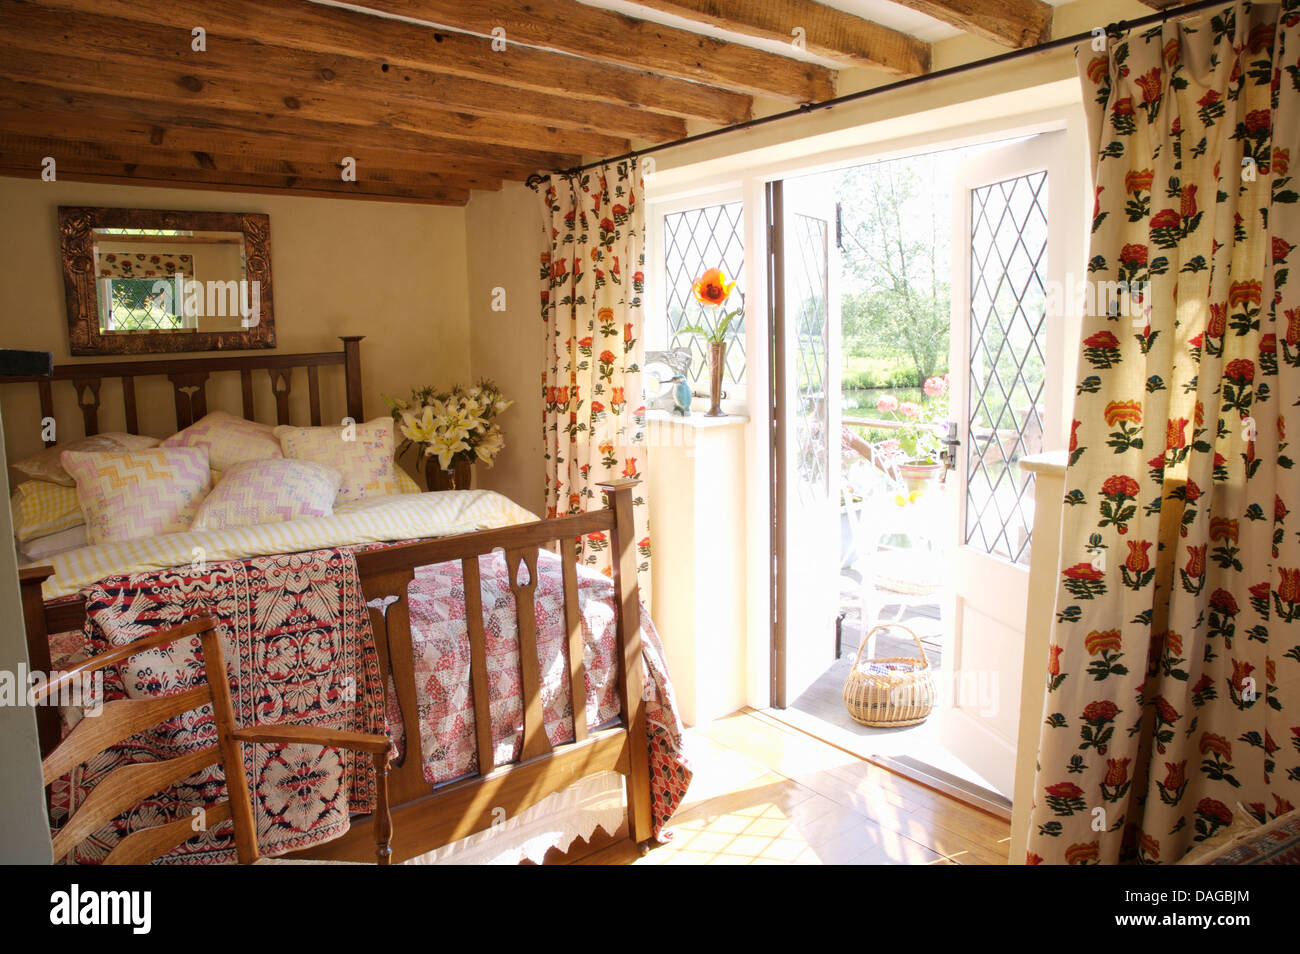 Cottage curtains - Floral Curtains At French Windows To Balcony In Cottage Bedroom With Pink Quilt On Simple Wooden Bed